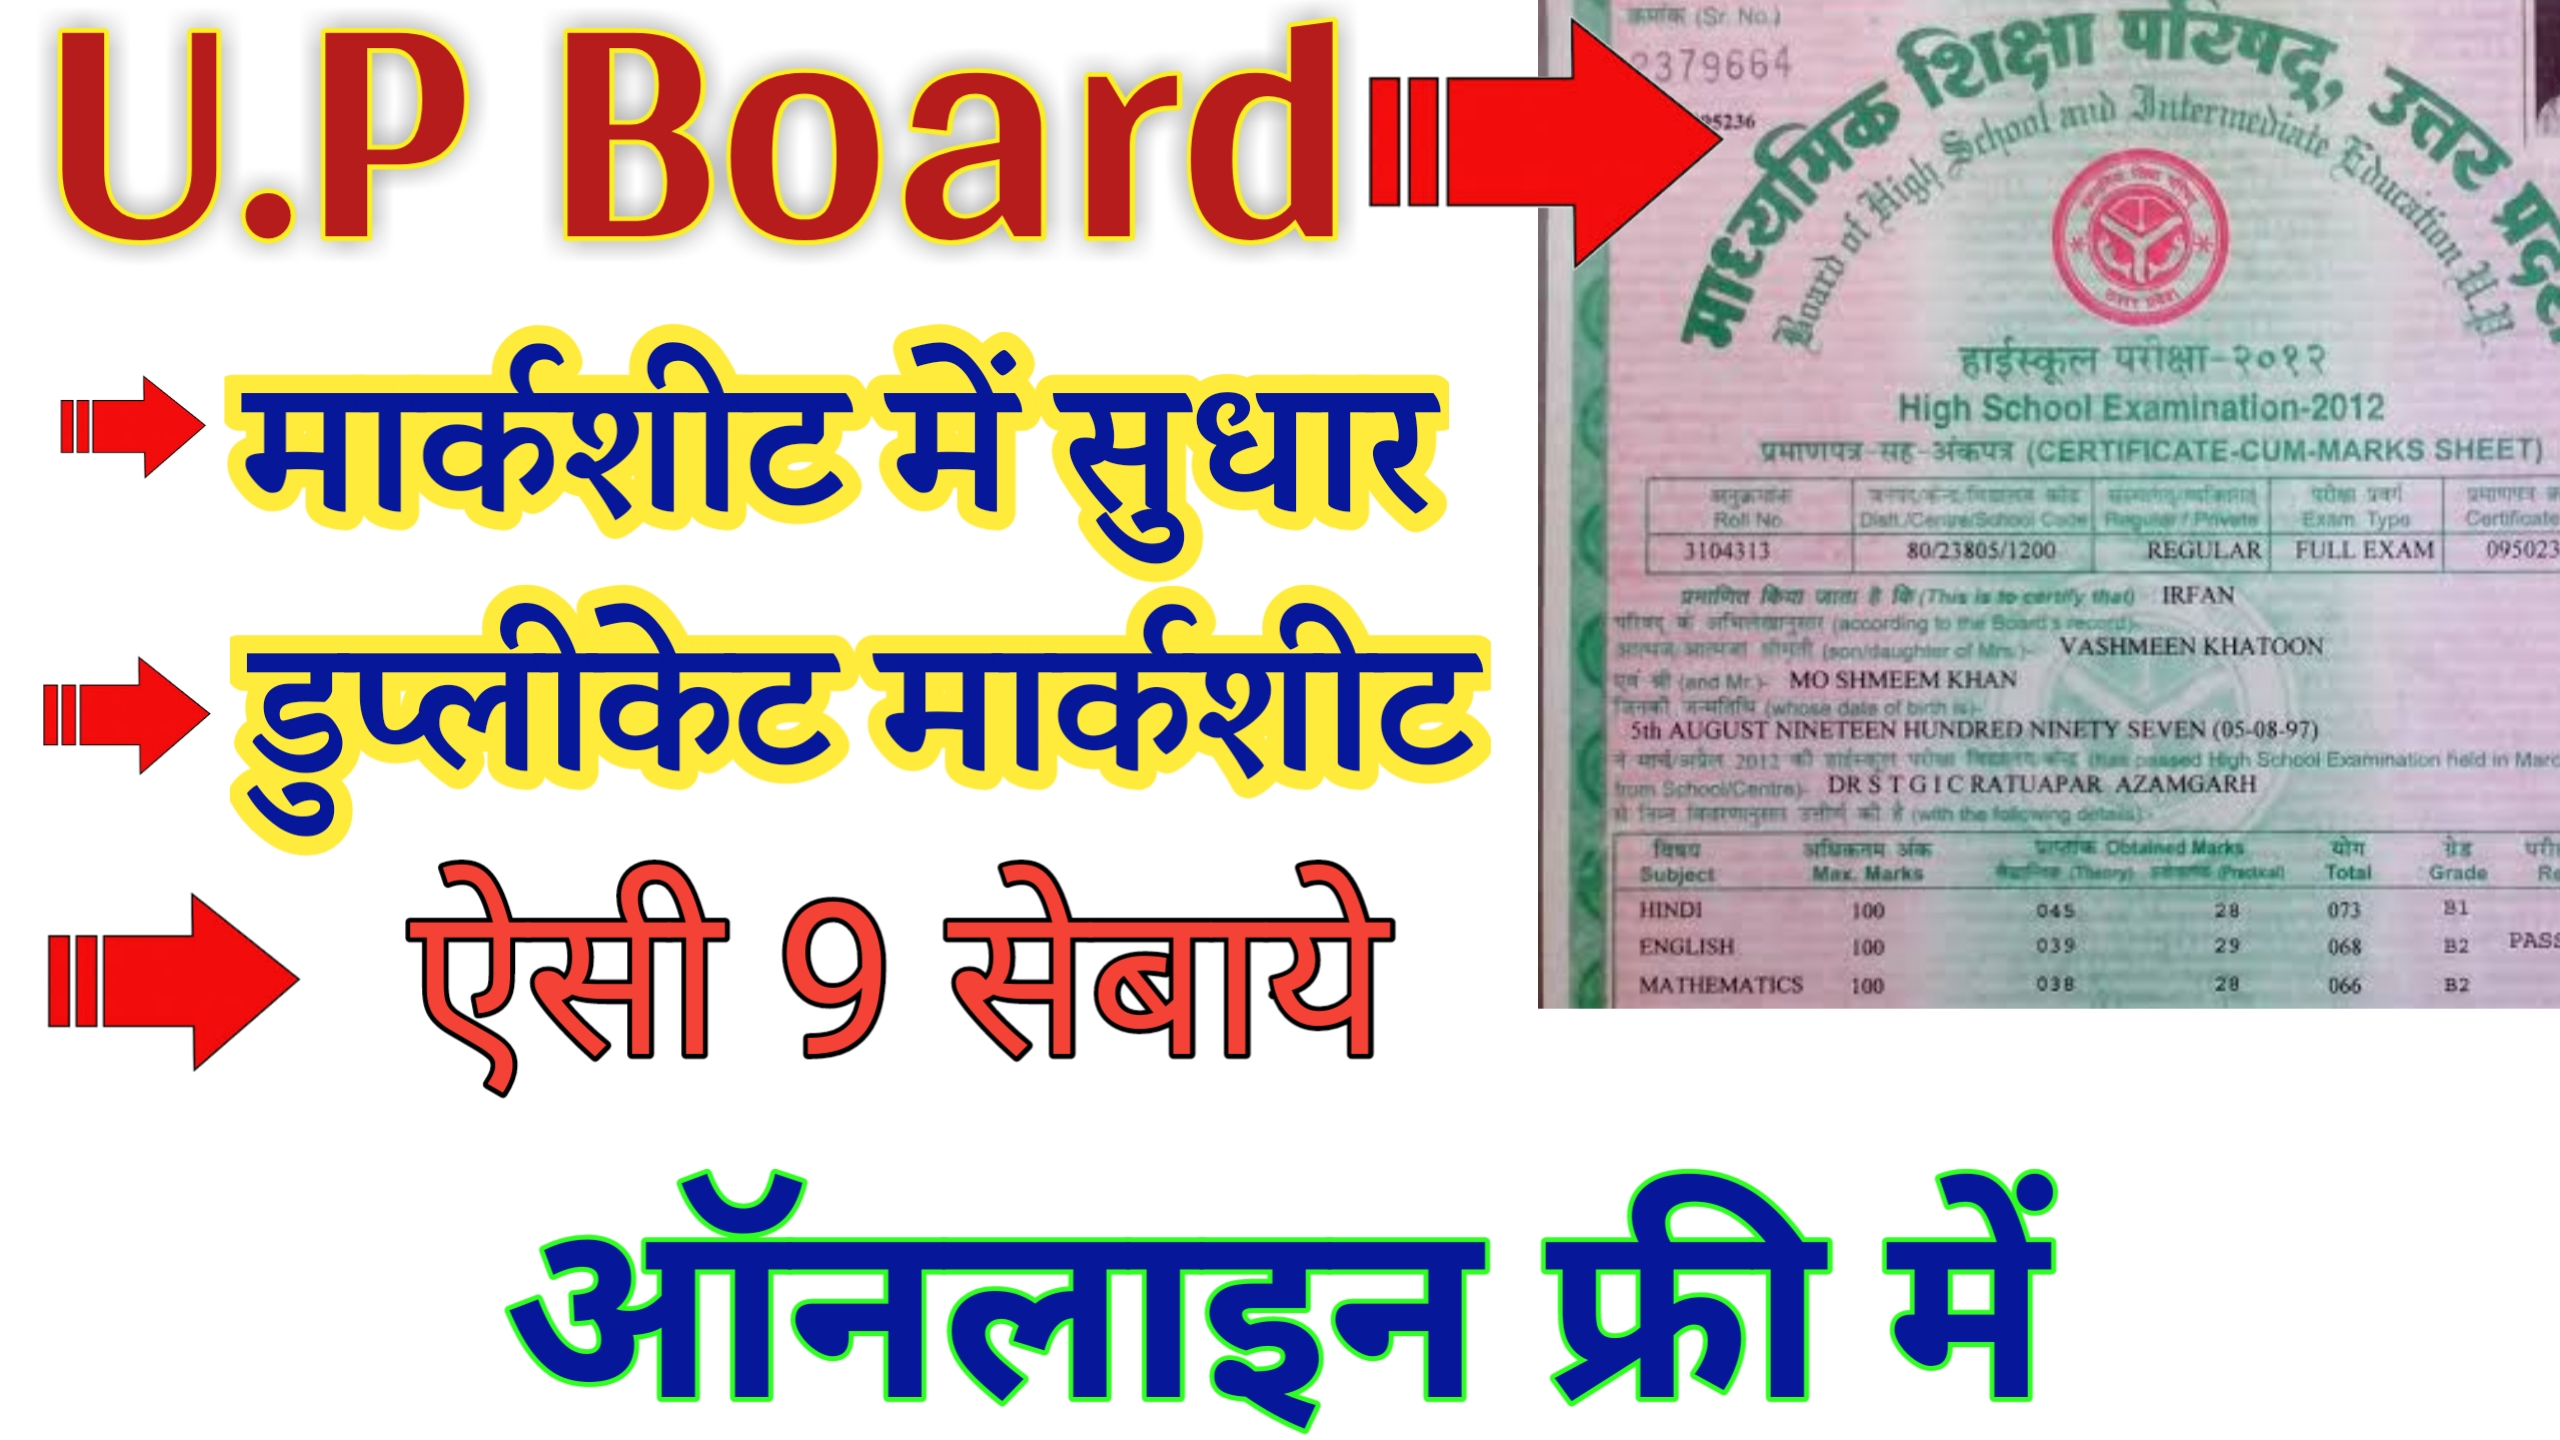 UP Board 10th ,12th marksheet download and correction online